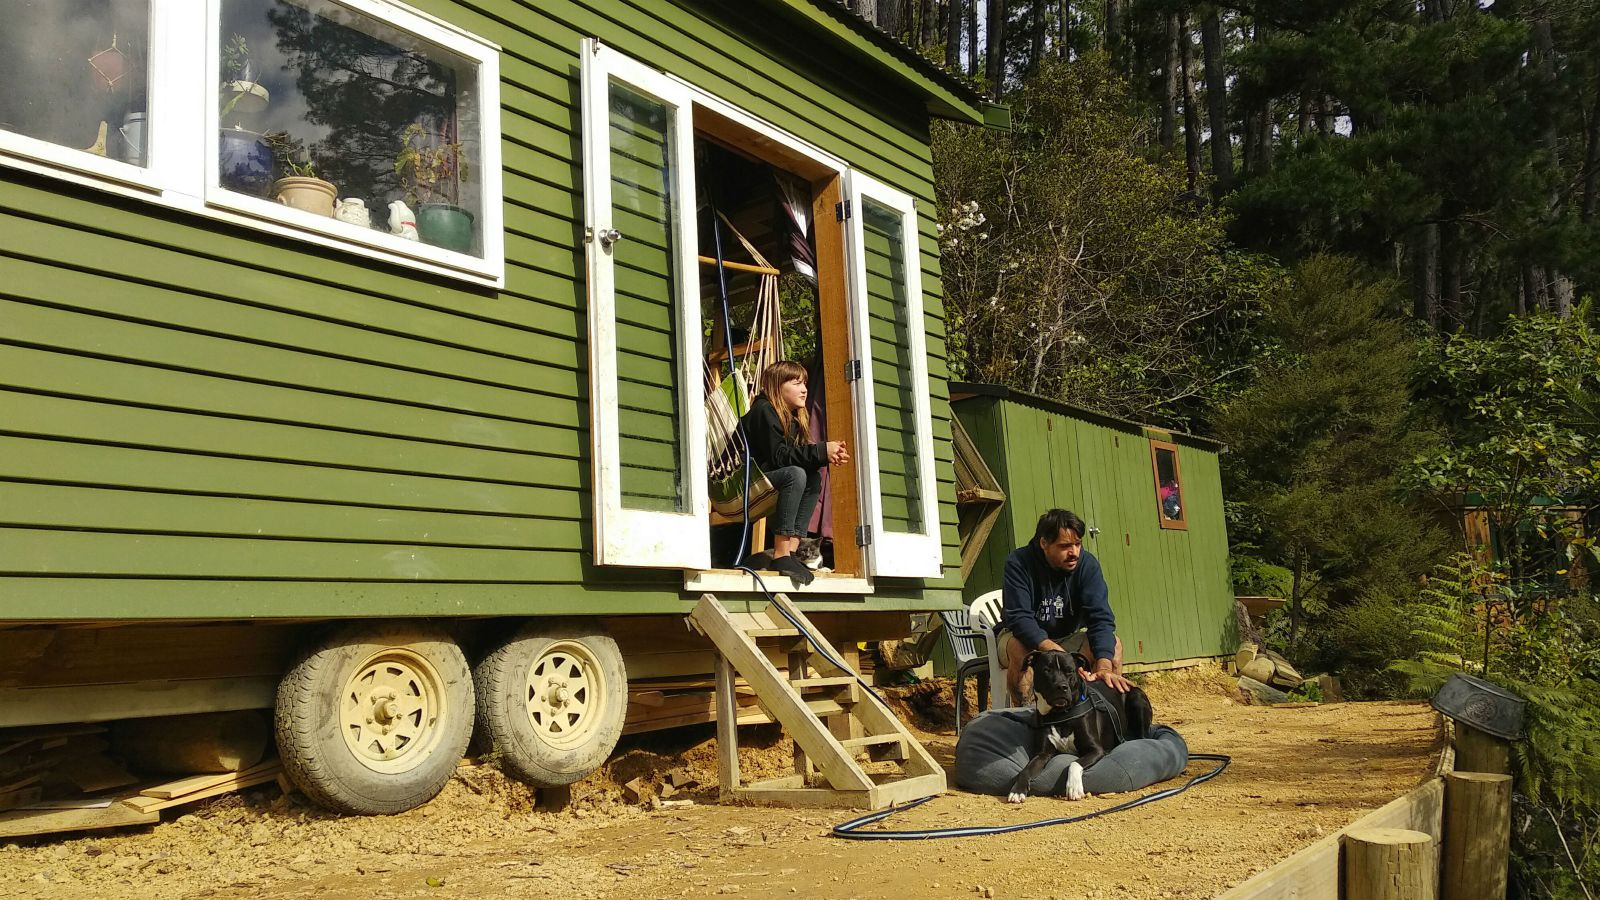 Daniel Burmester and his daughter, Charlee, outside their tiny house. The house is green with white doors and wooden steps leading up to the door.